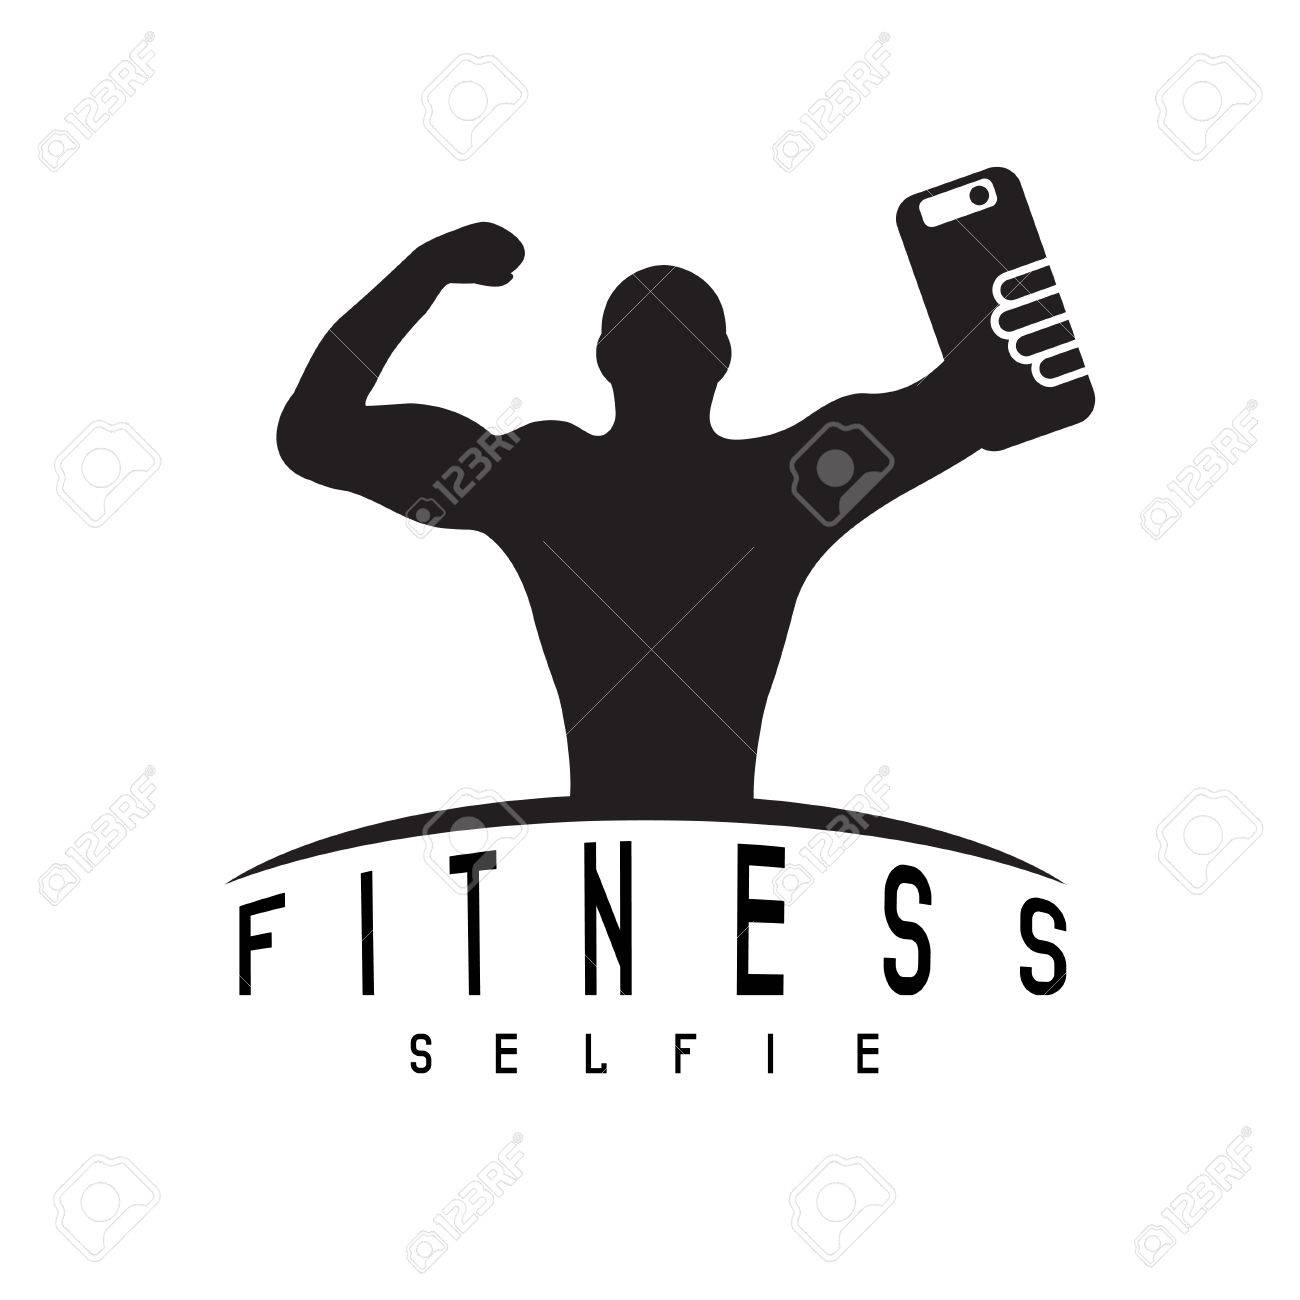 man of fitness silhouette character make selfie vector design